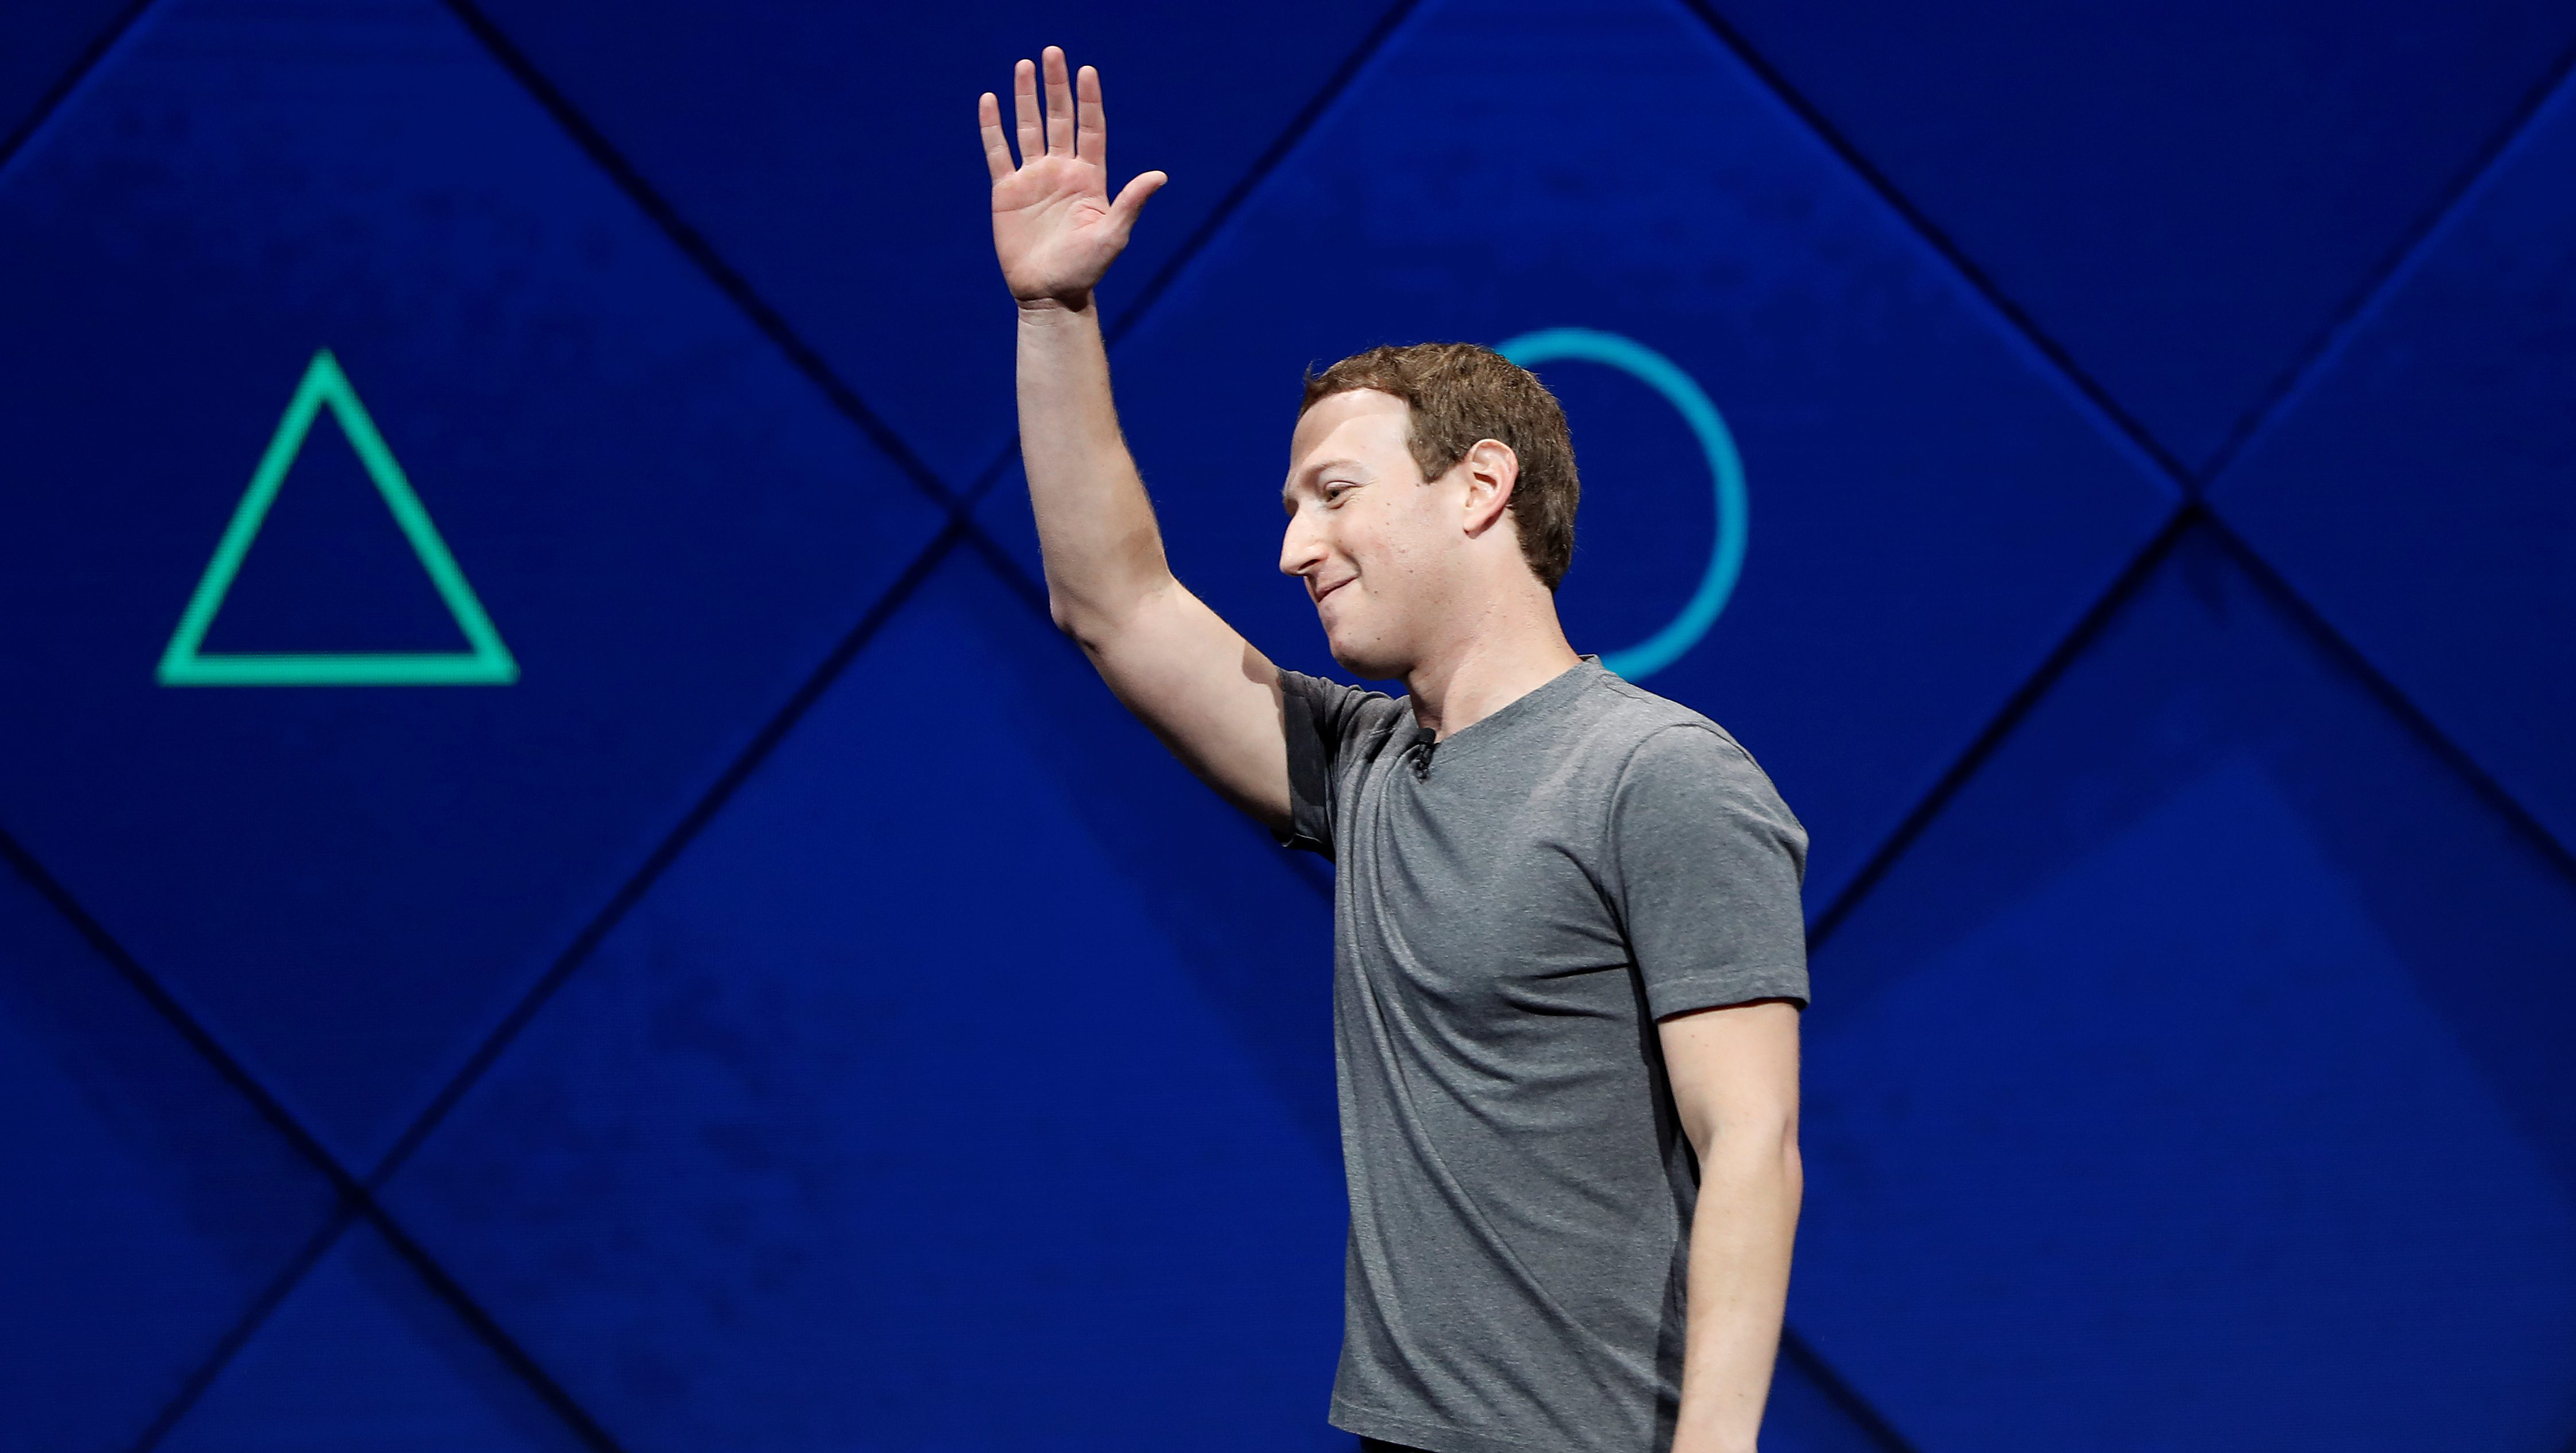 Facebook Founder and CEO Mark Zuckerberg waves as he leaves the stage during the annual Facebook F8 developers conference in San Jose, California, U.S., April 18, 2017.